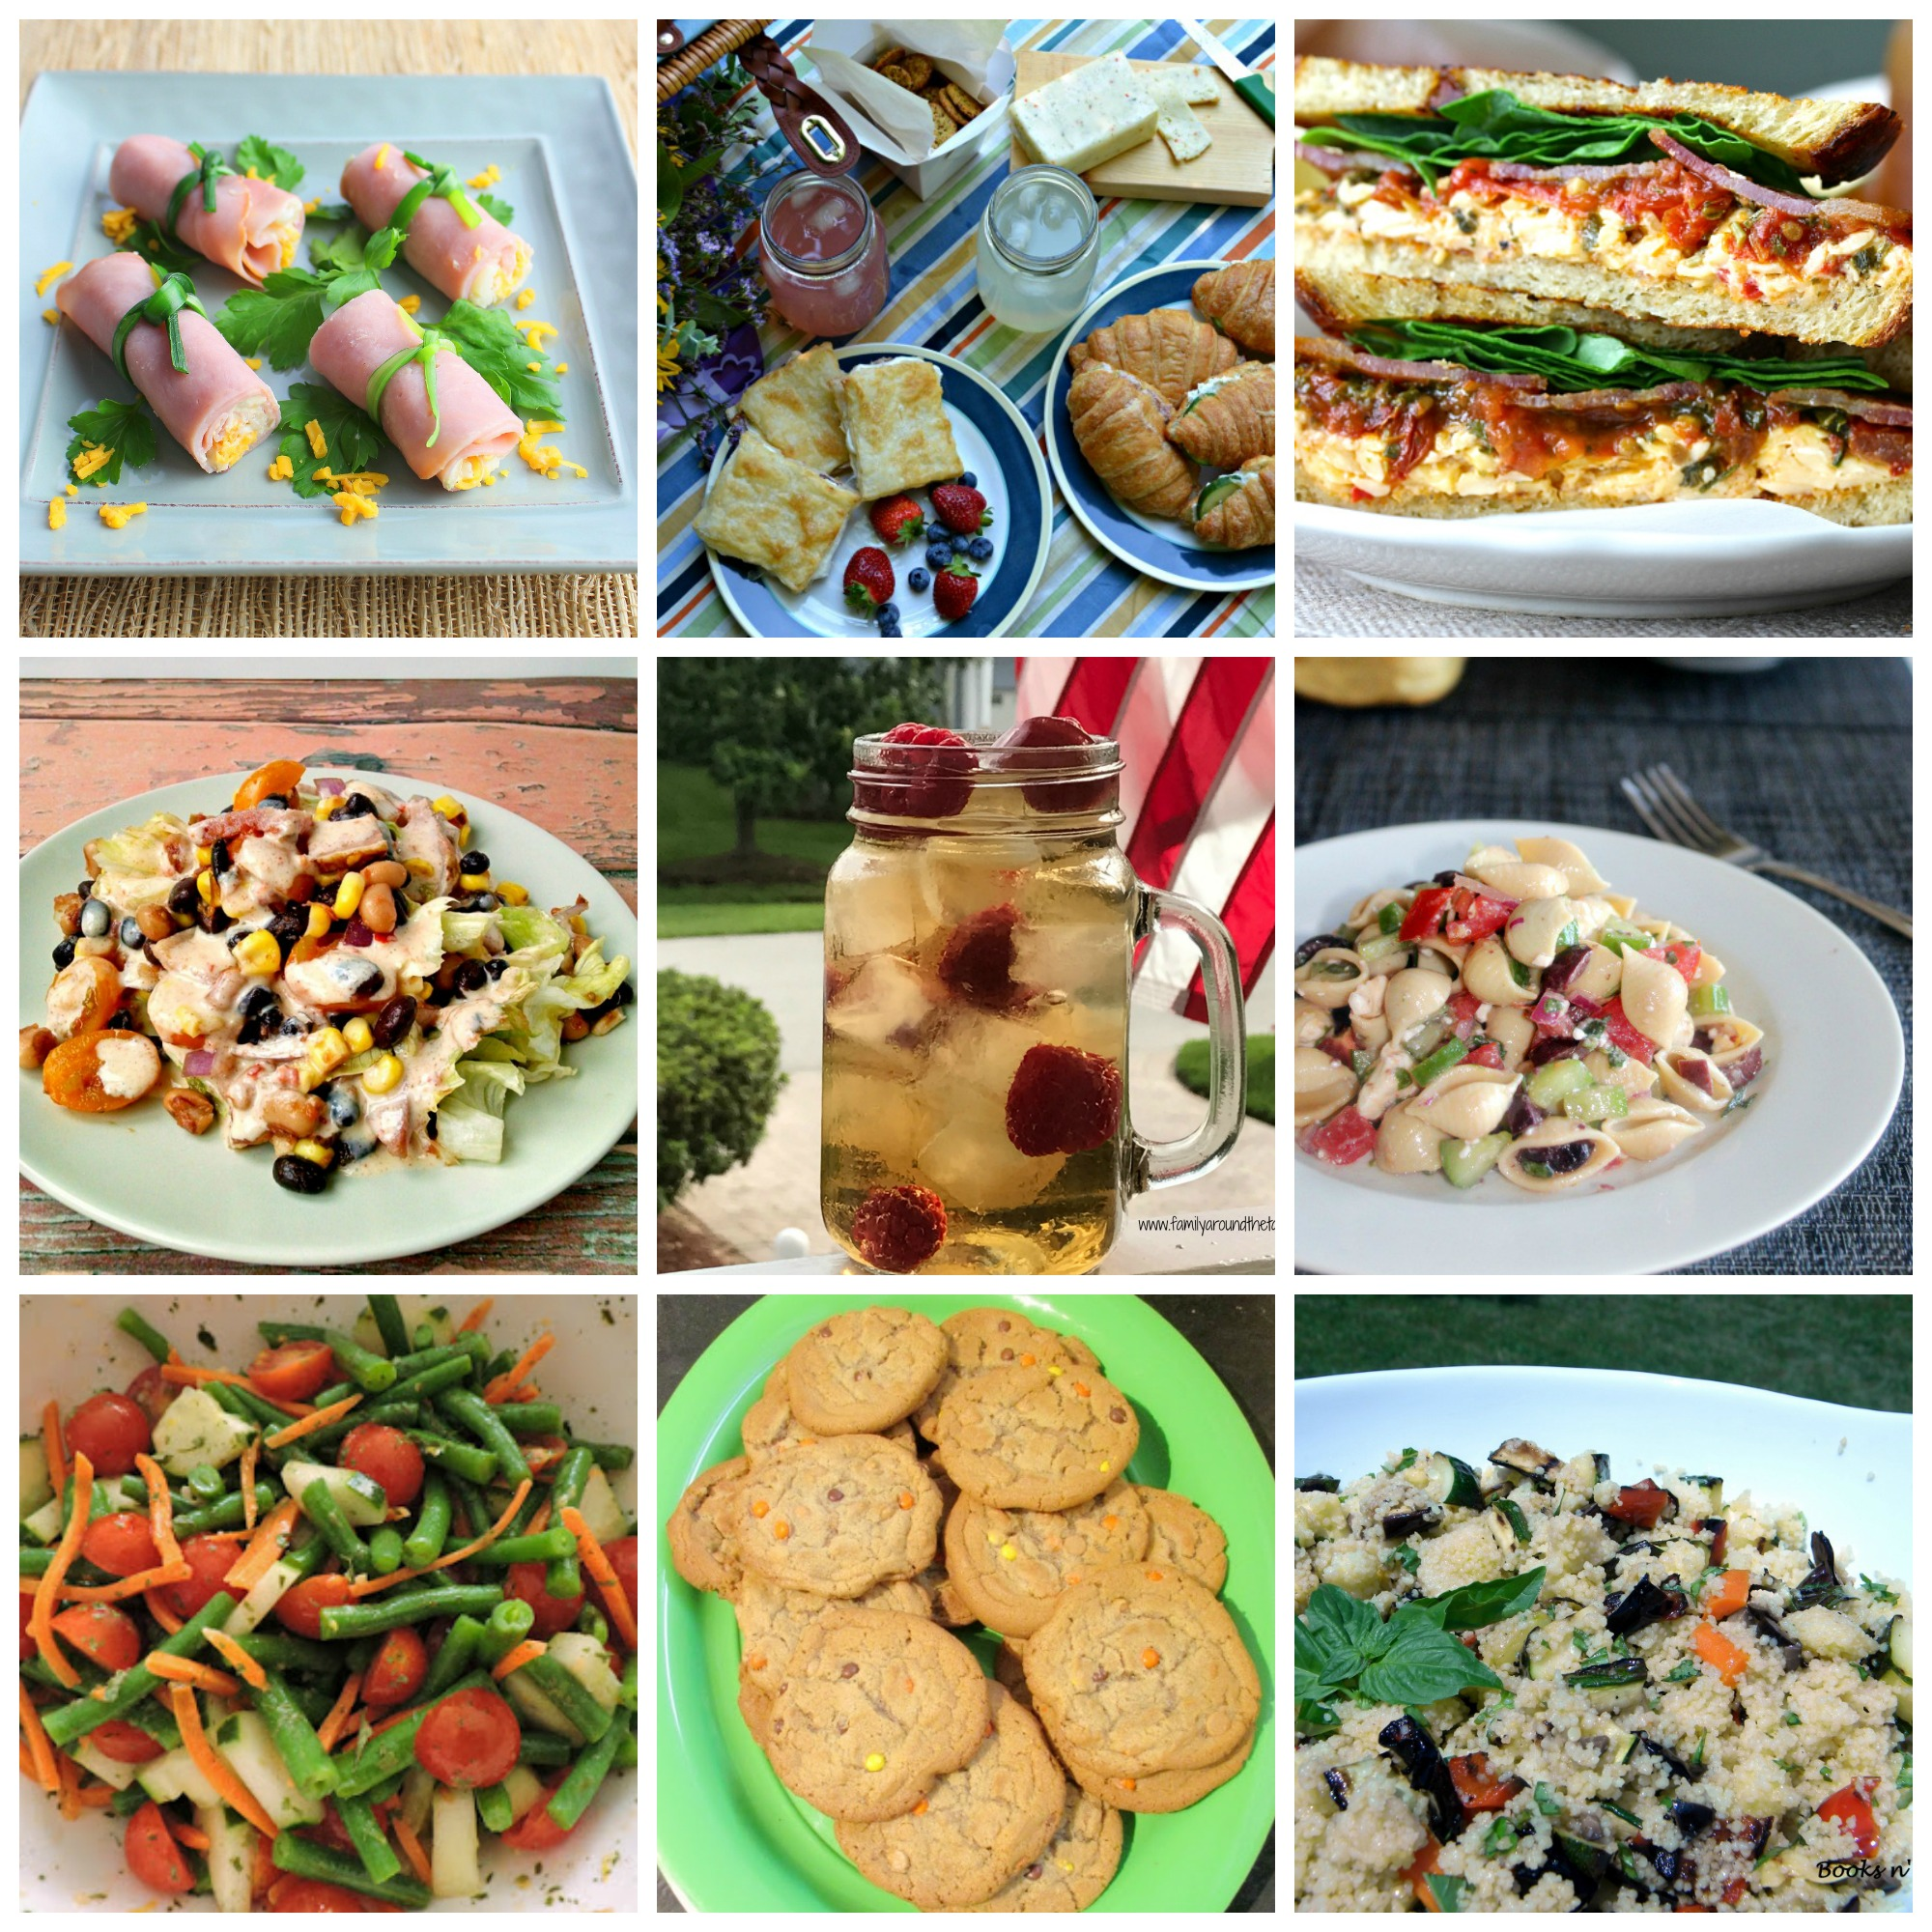 Summer picnic fare